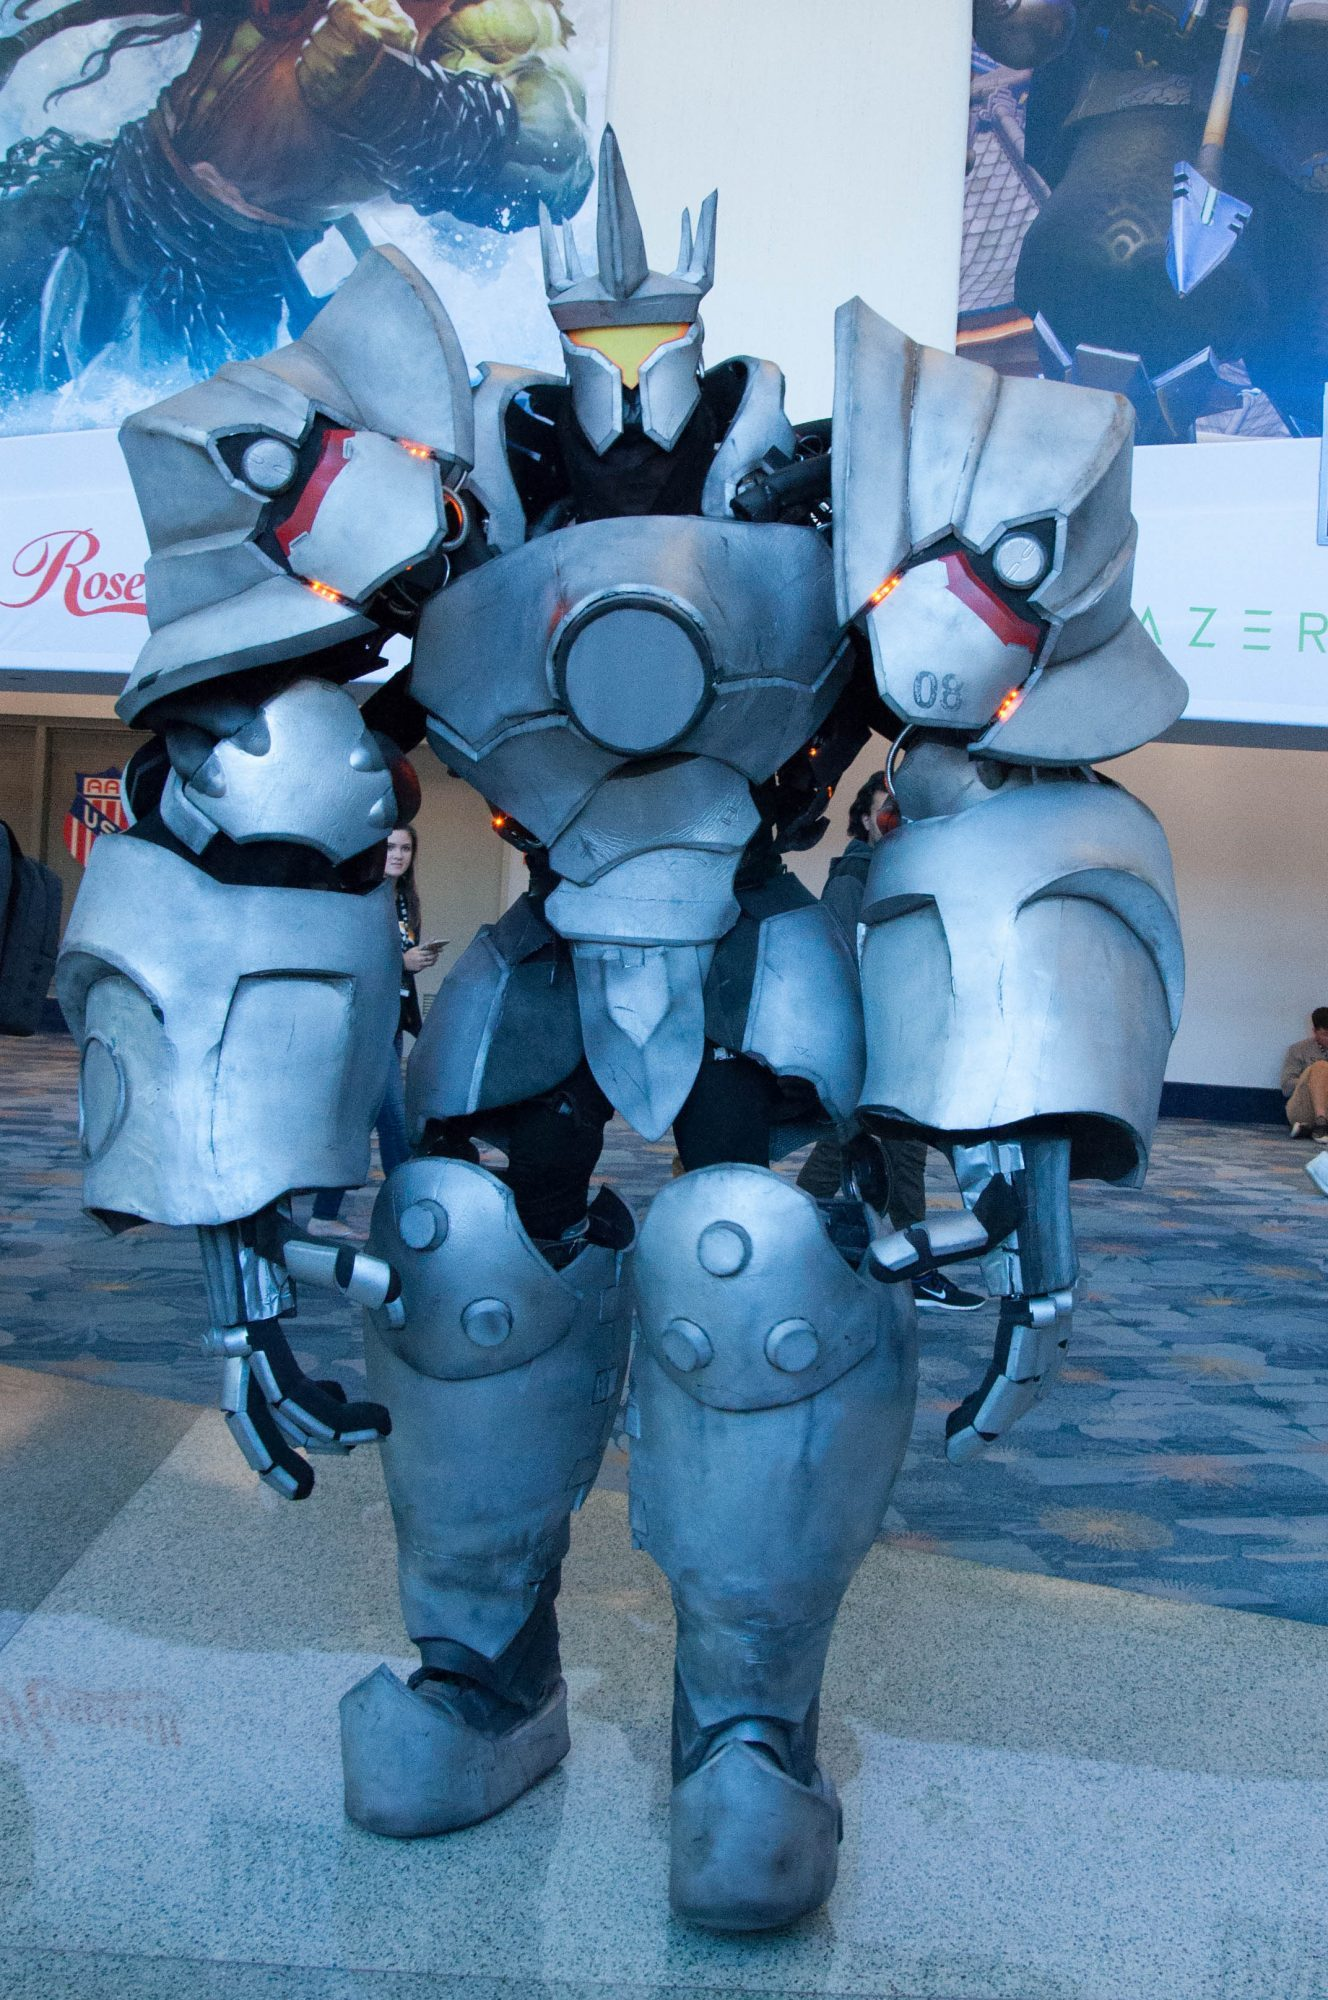 PHOTOS Blizzcon 2016 Cosplays Amp Statues Girls On Games